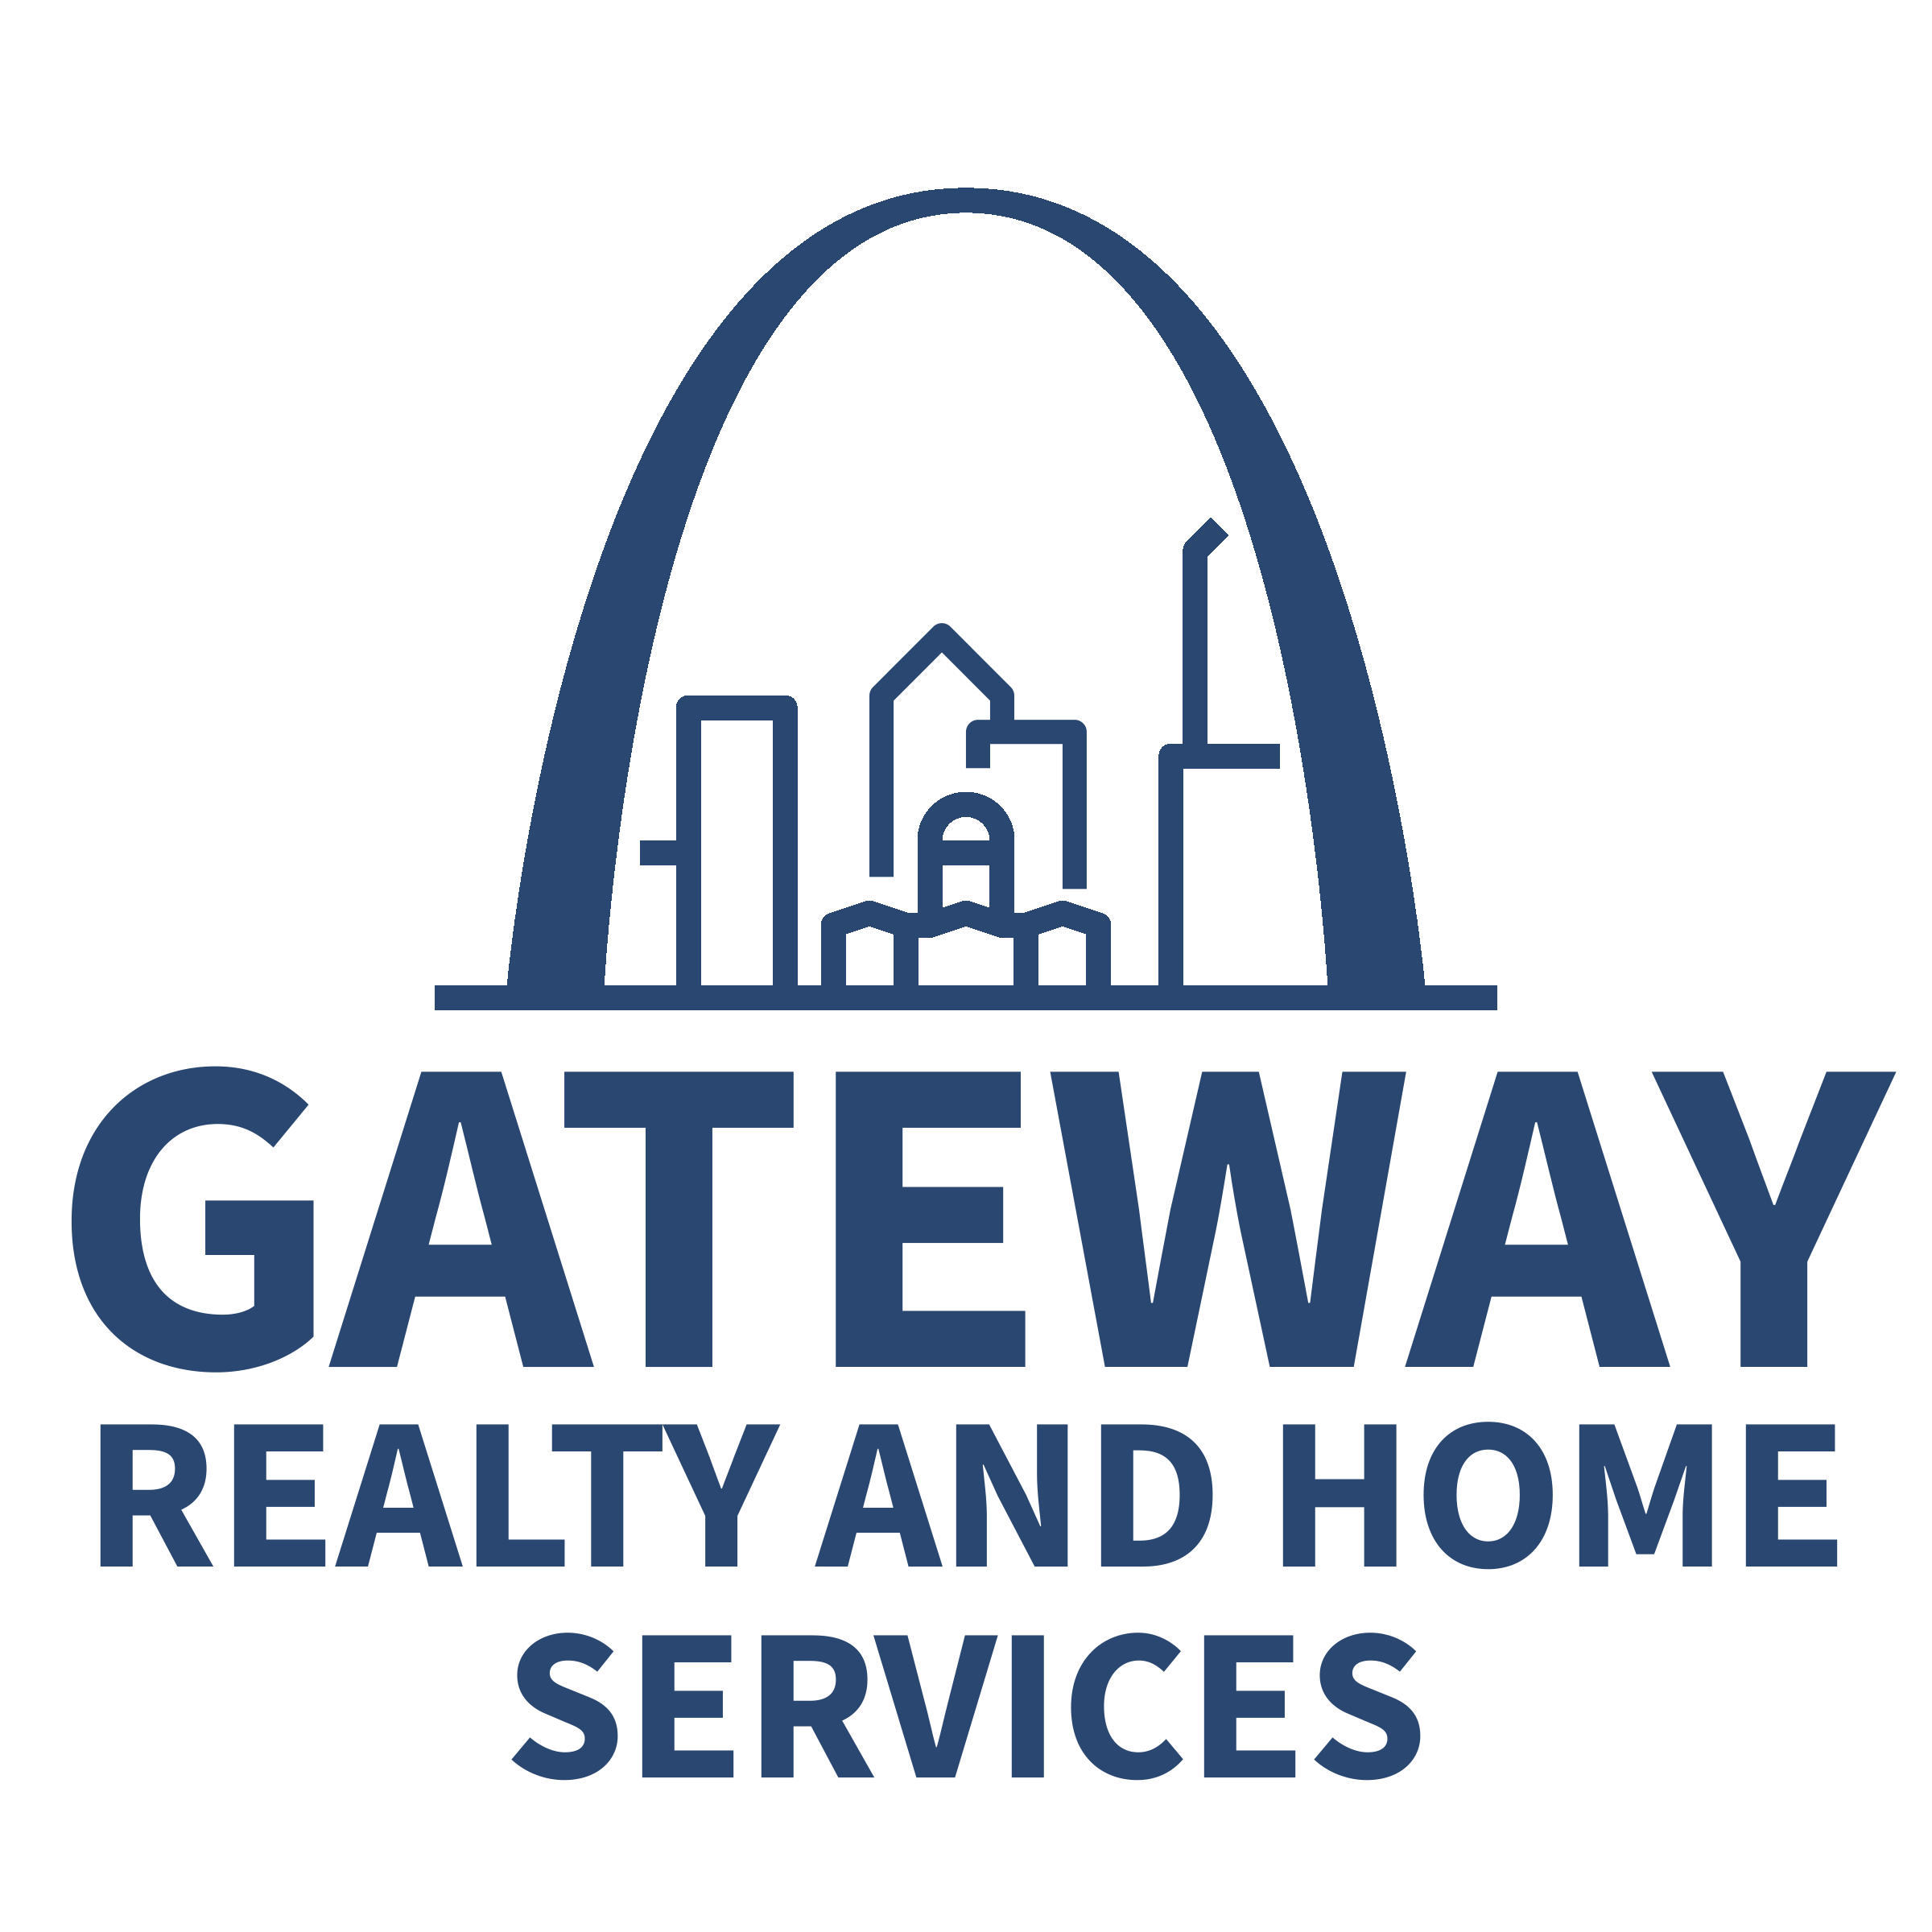 Gateway Realty and Home